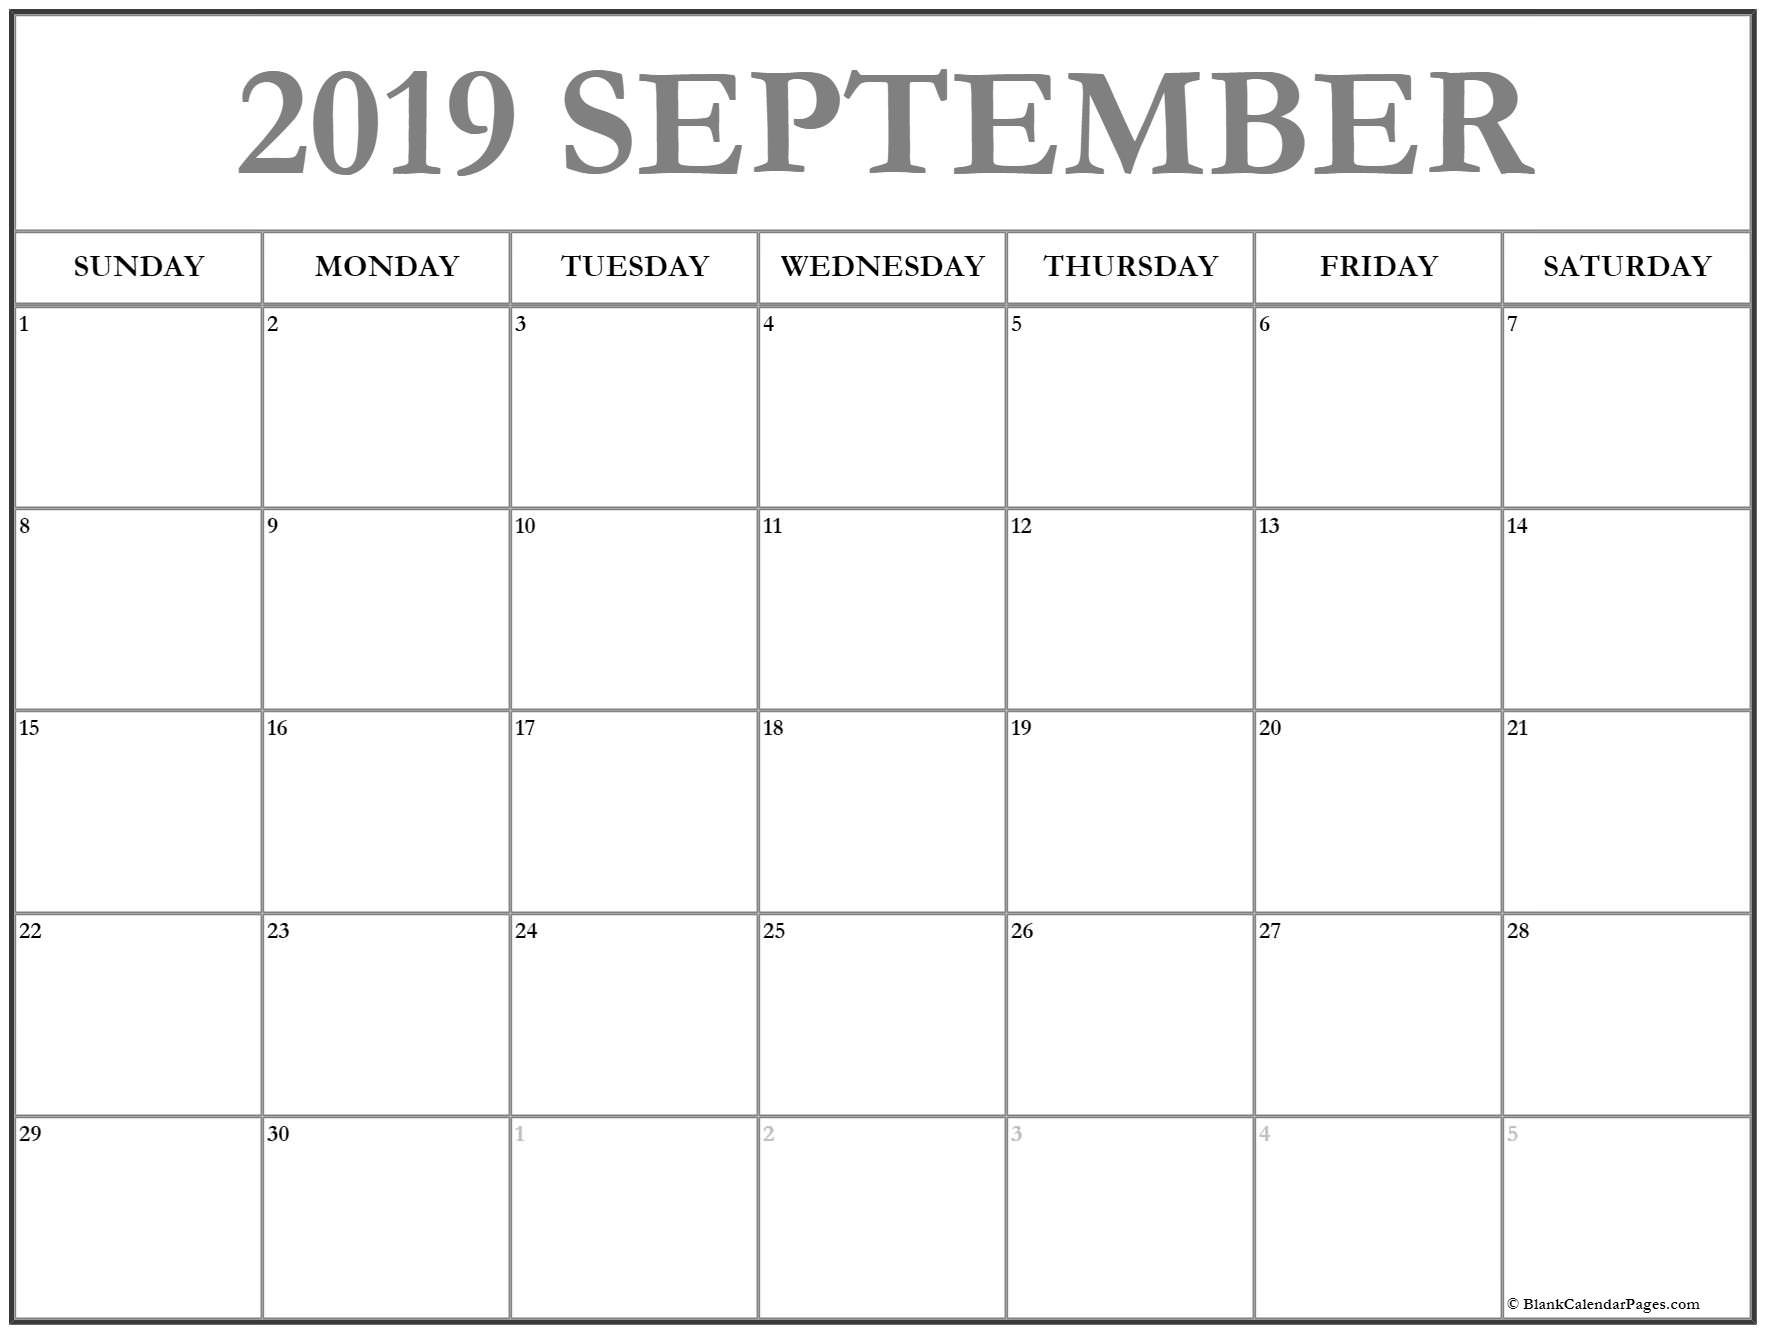 September 2019 Calendar | Free Printable Monthly Calendars Mon-Fri Monthly Calendar Template